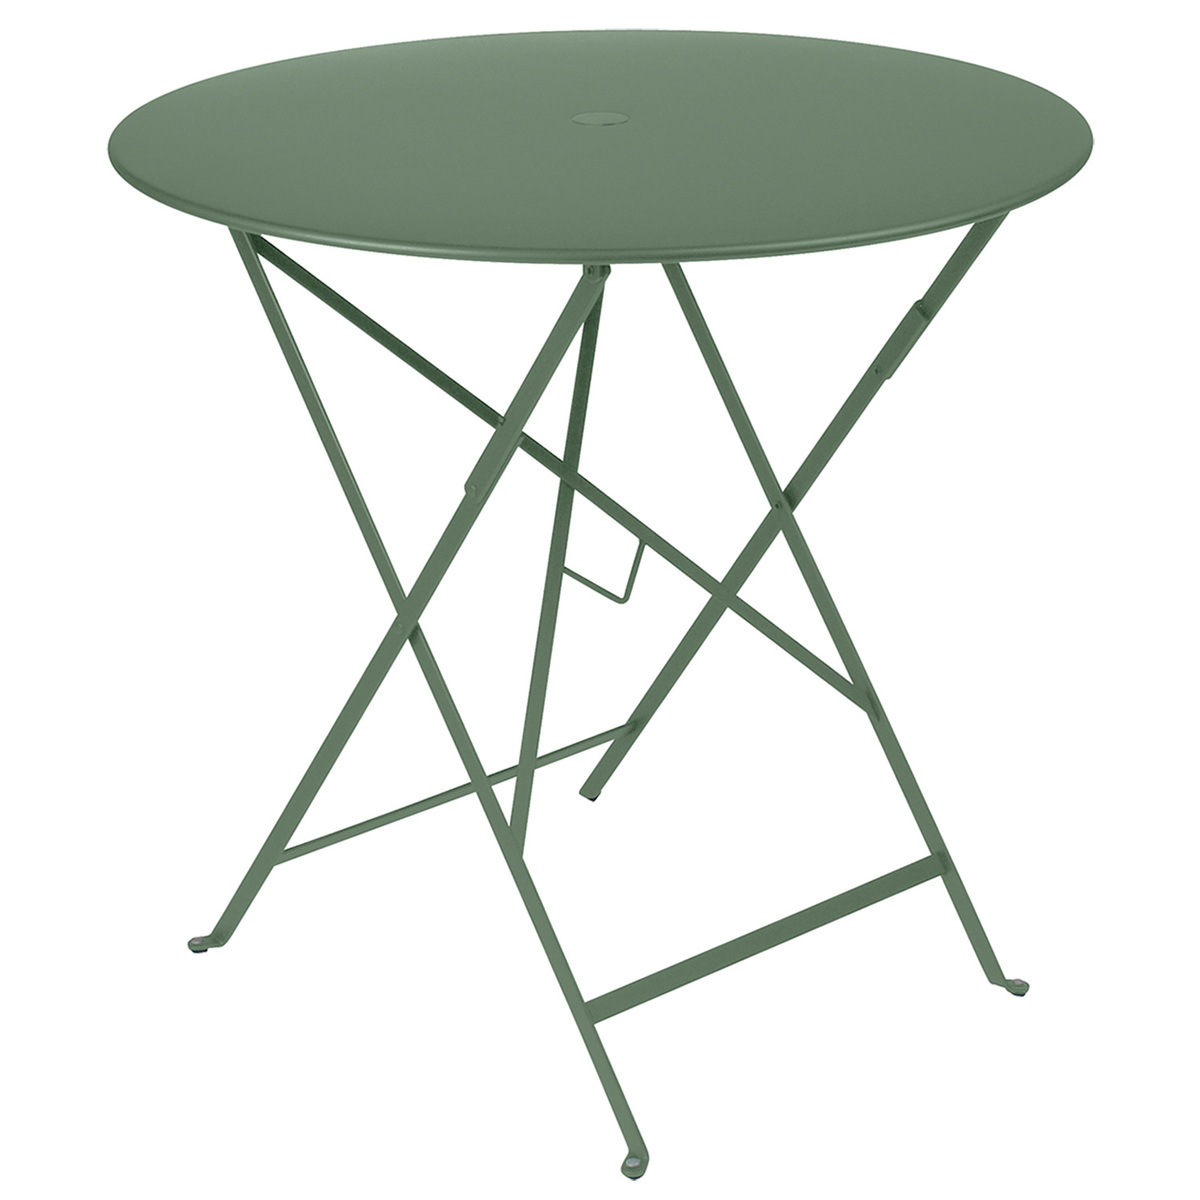 Fermob Bistro table 77 cm, cactus from Fermob